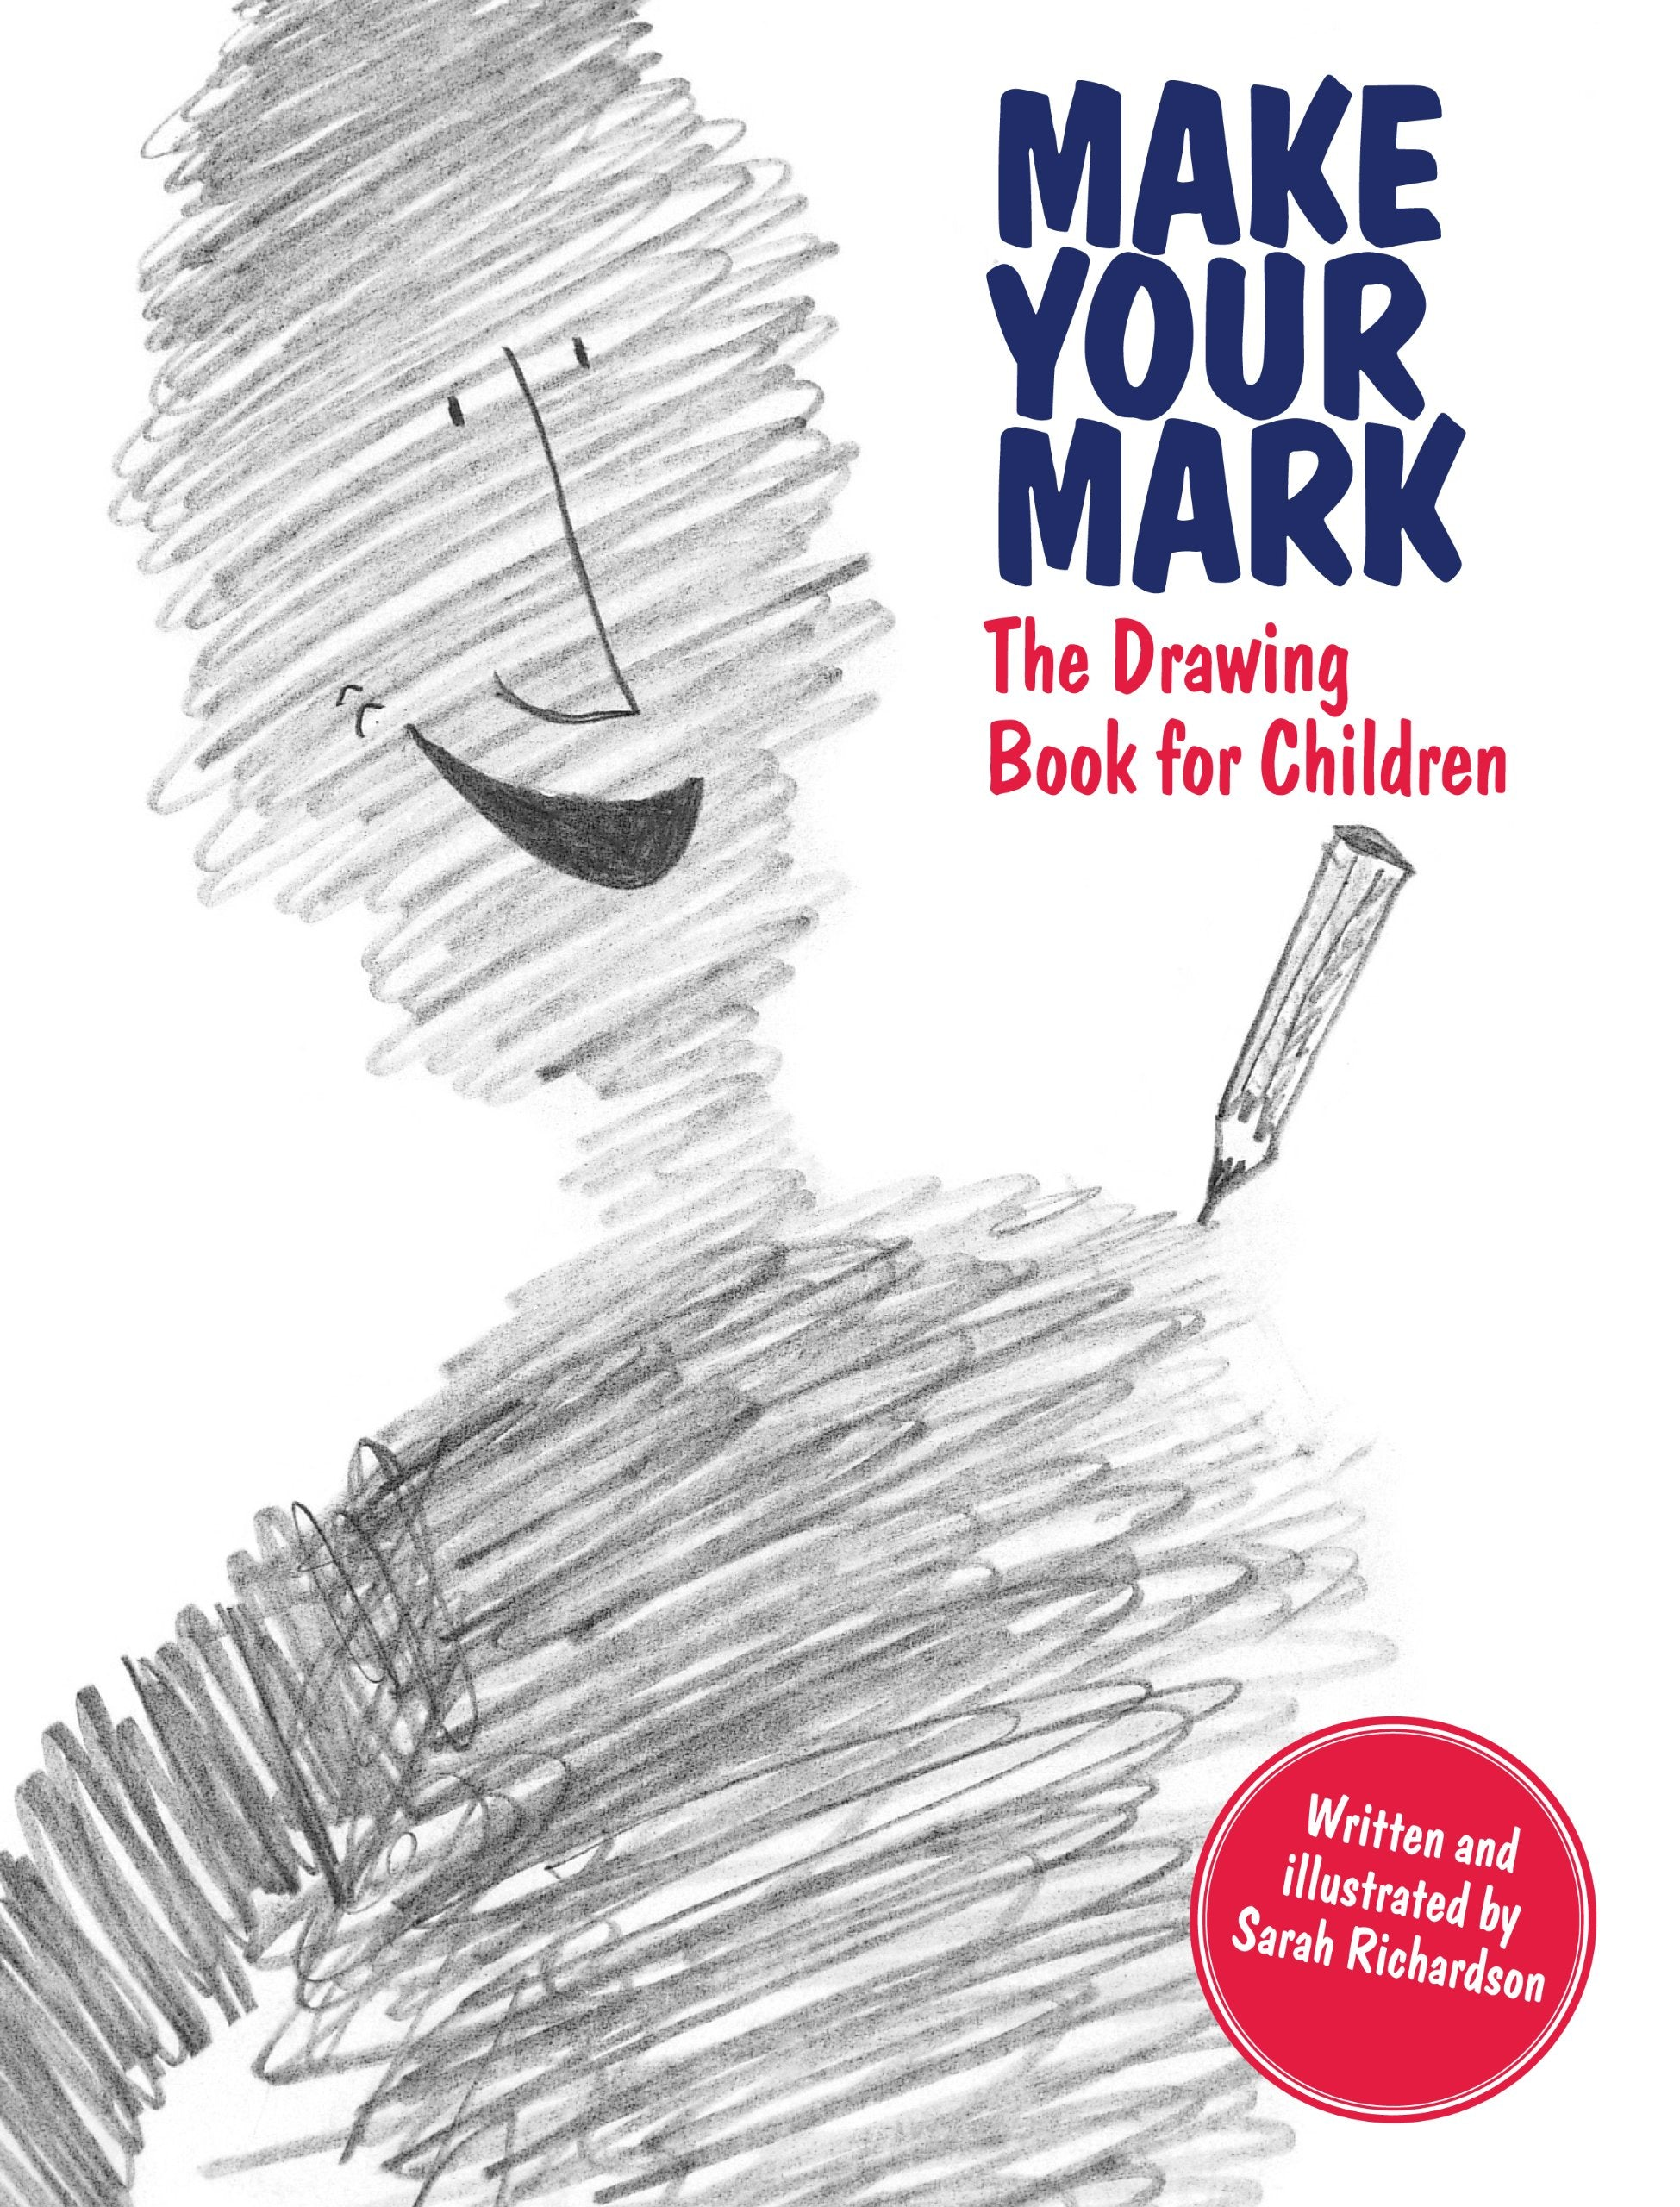 Make Your Mark: The Drawing Book for Children - Me Books Asia Store